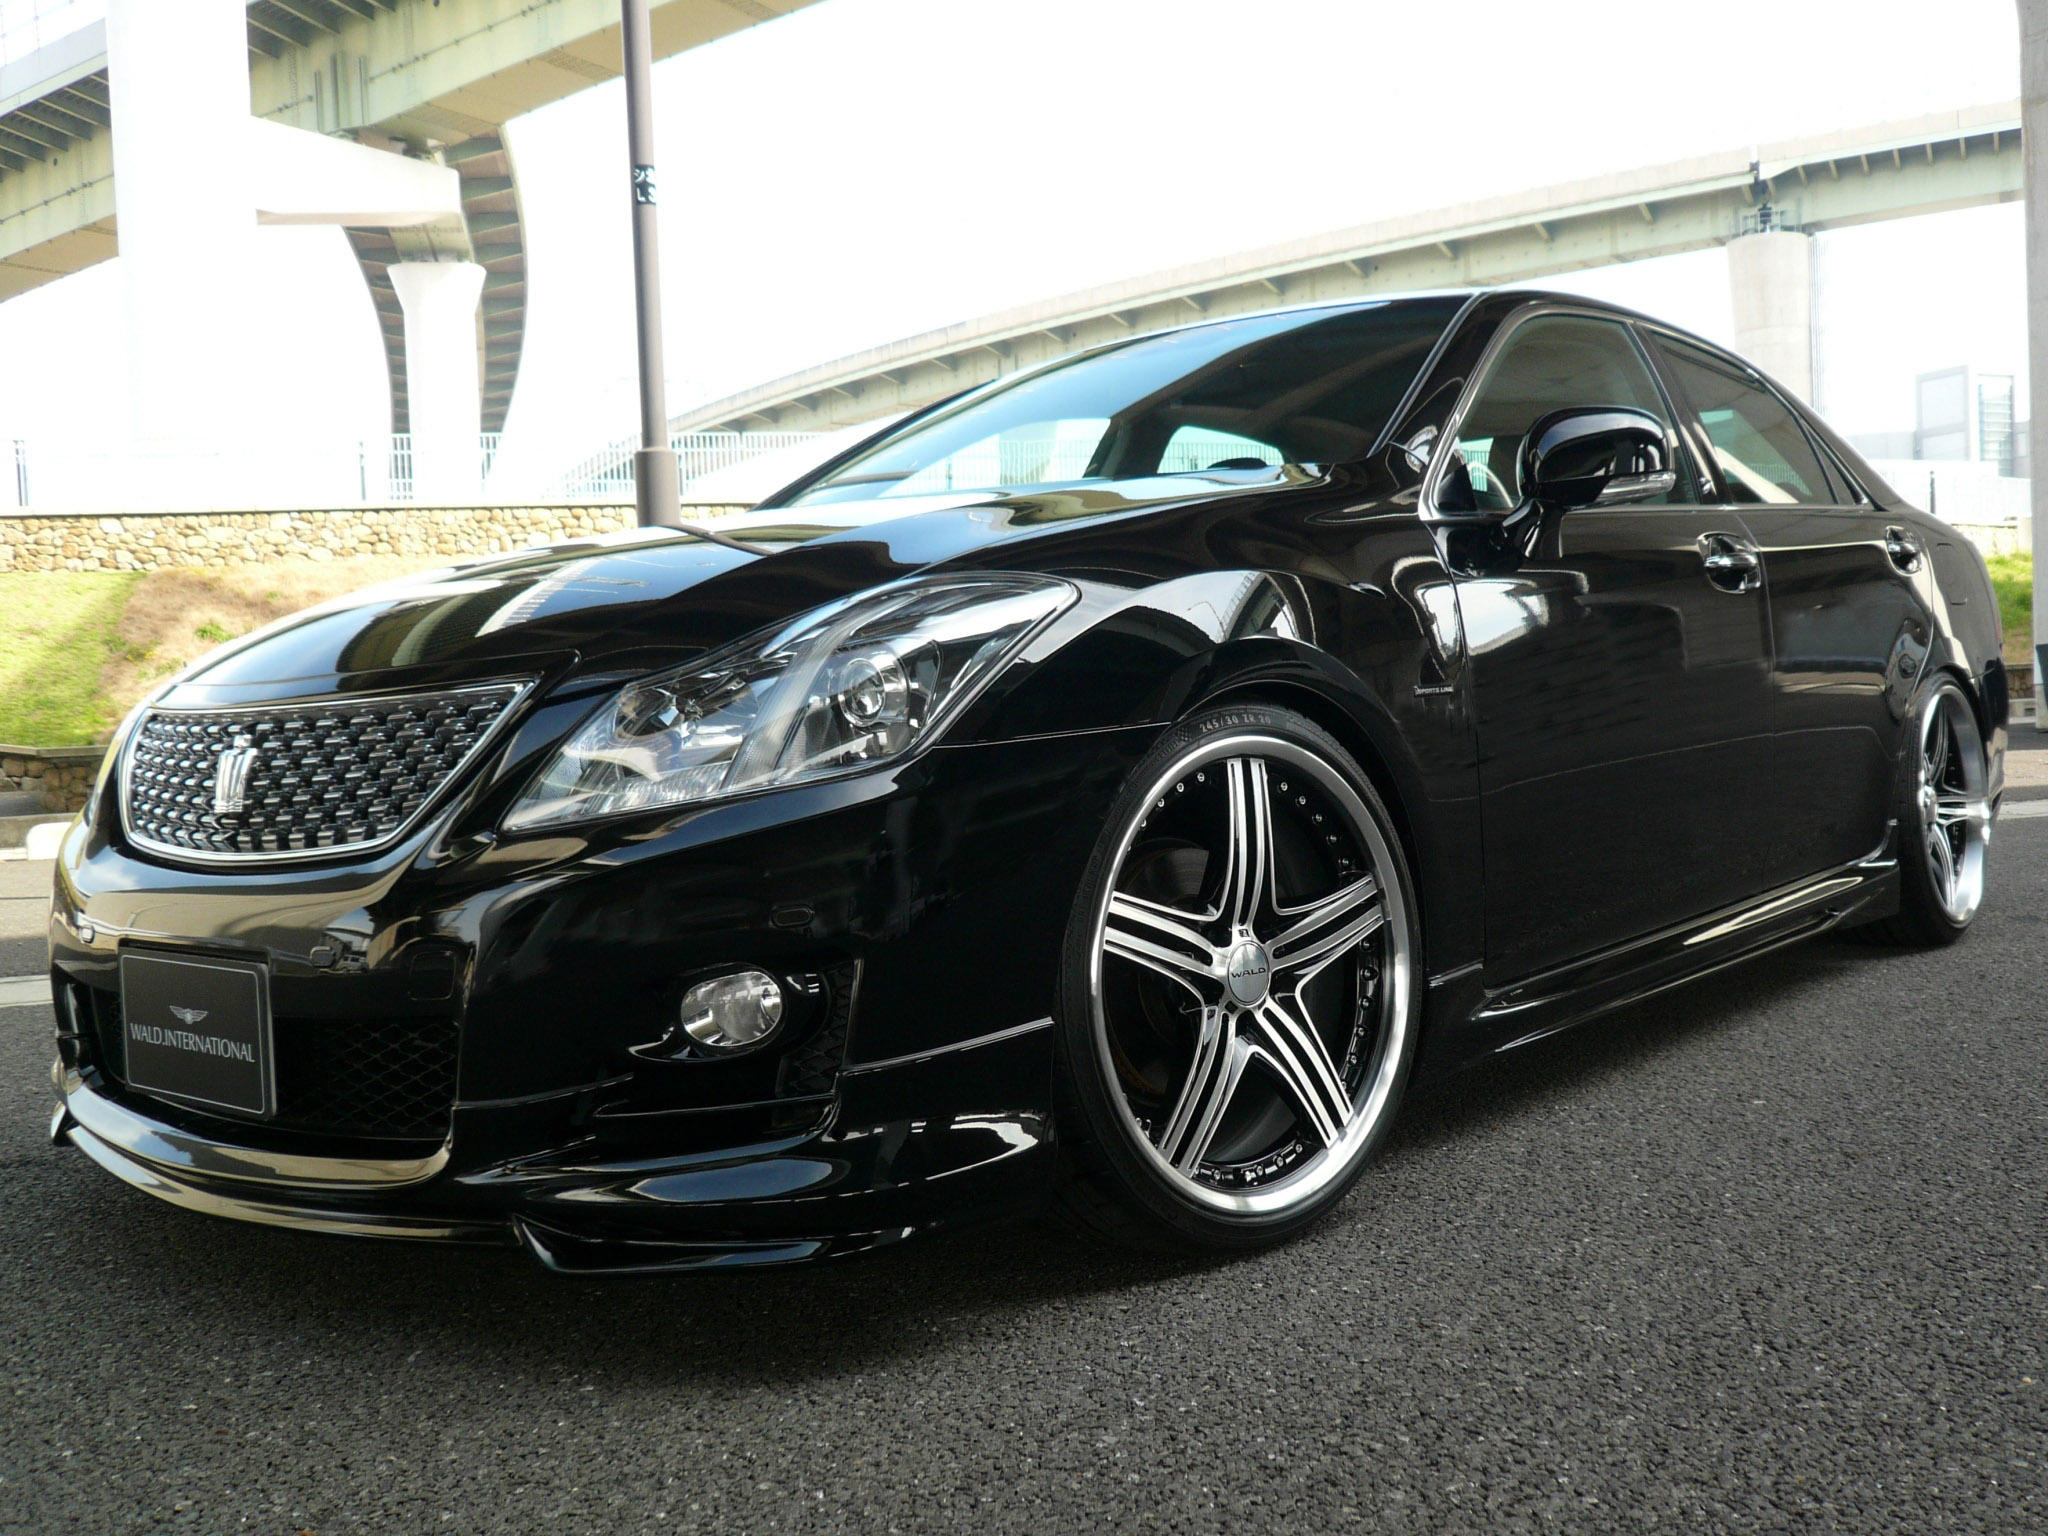 Toyota crown 2004 photo - 2